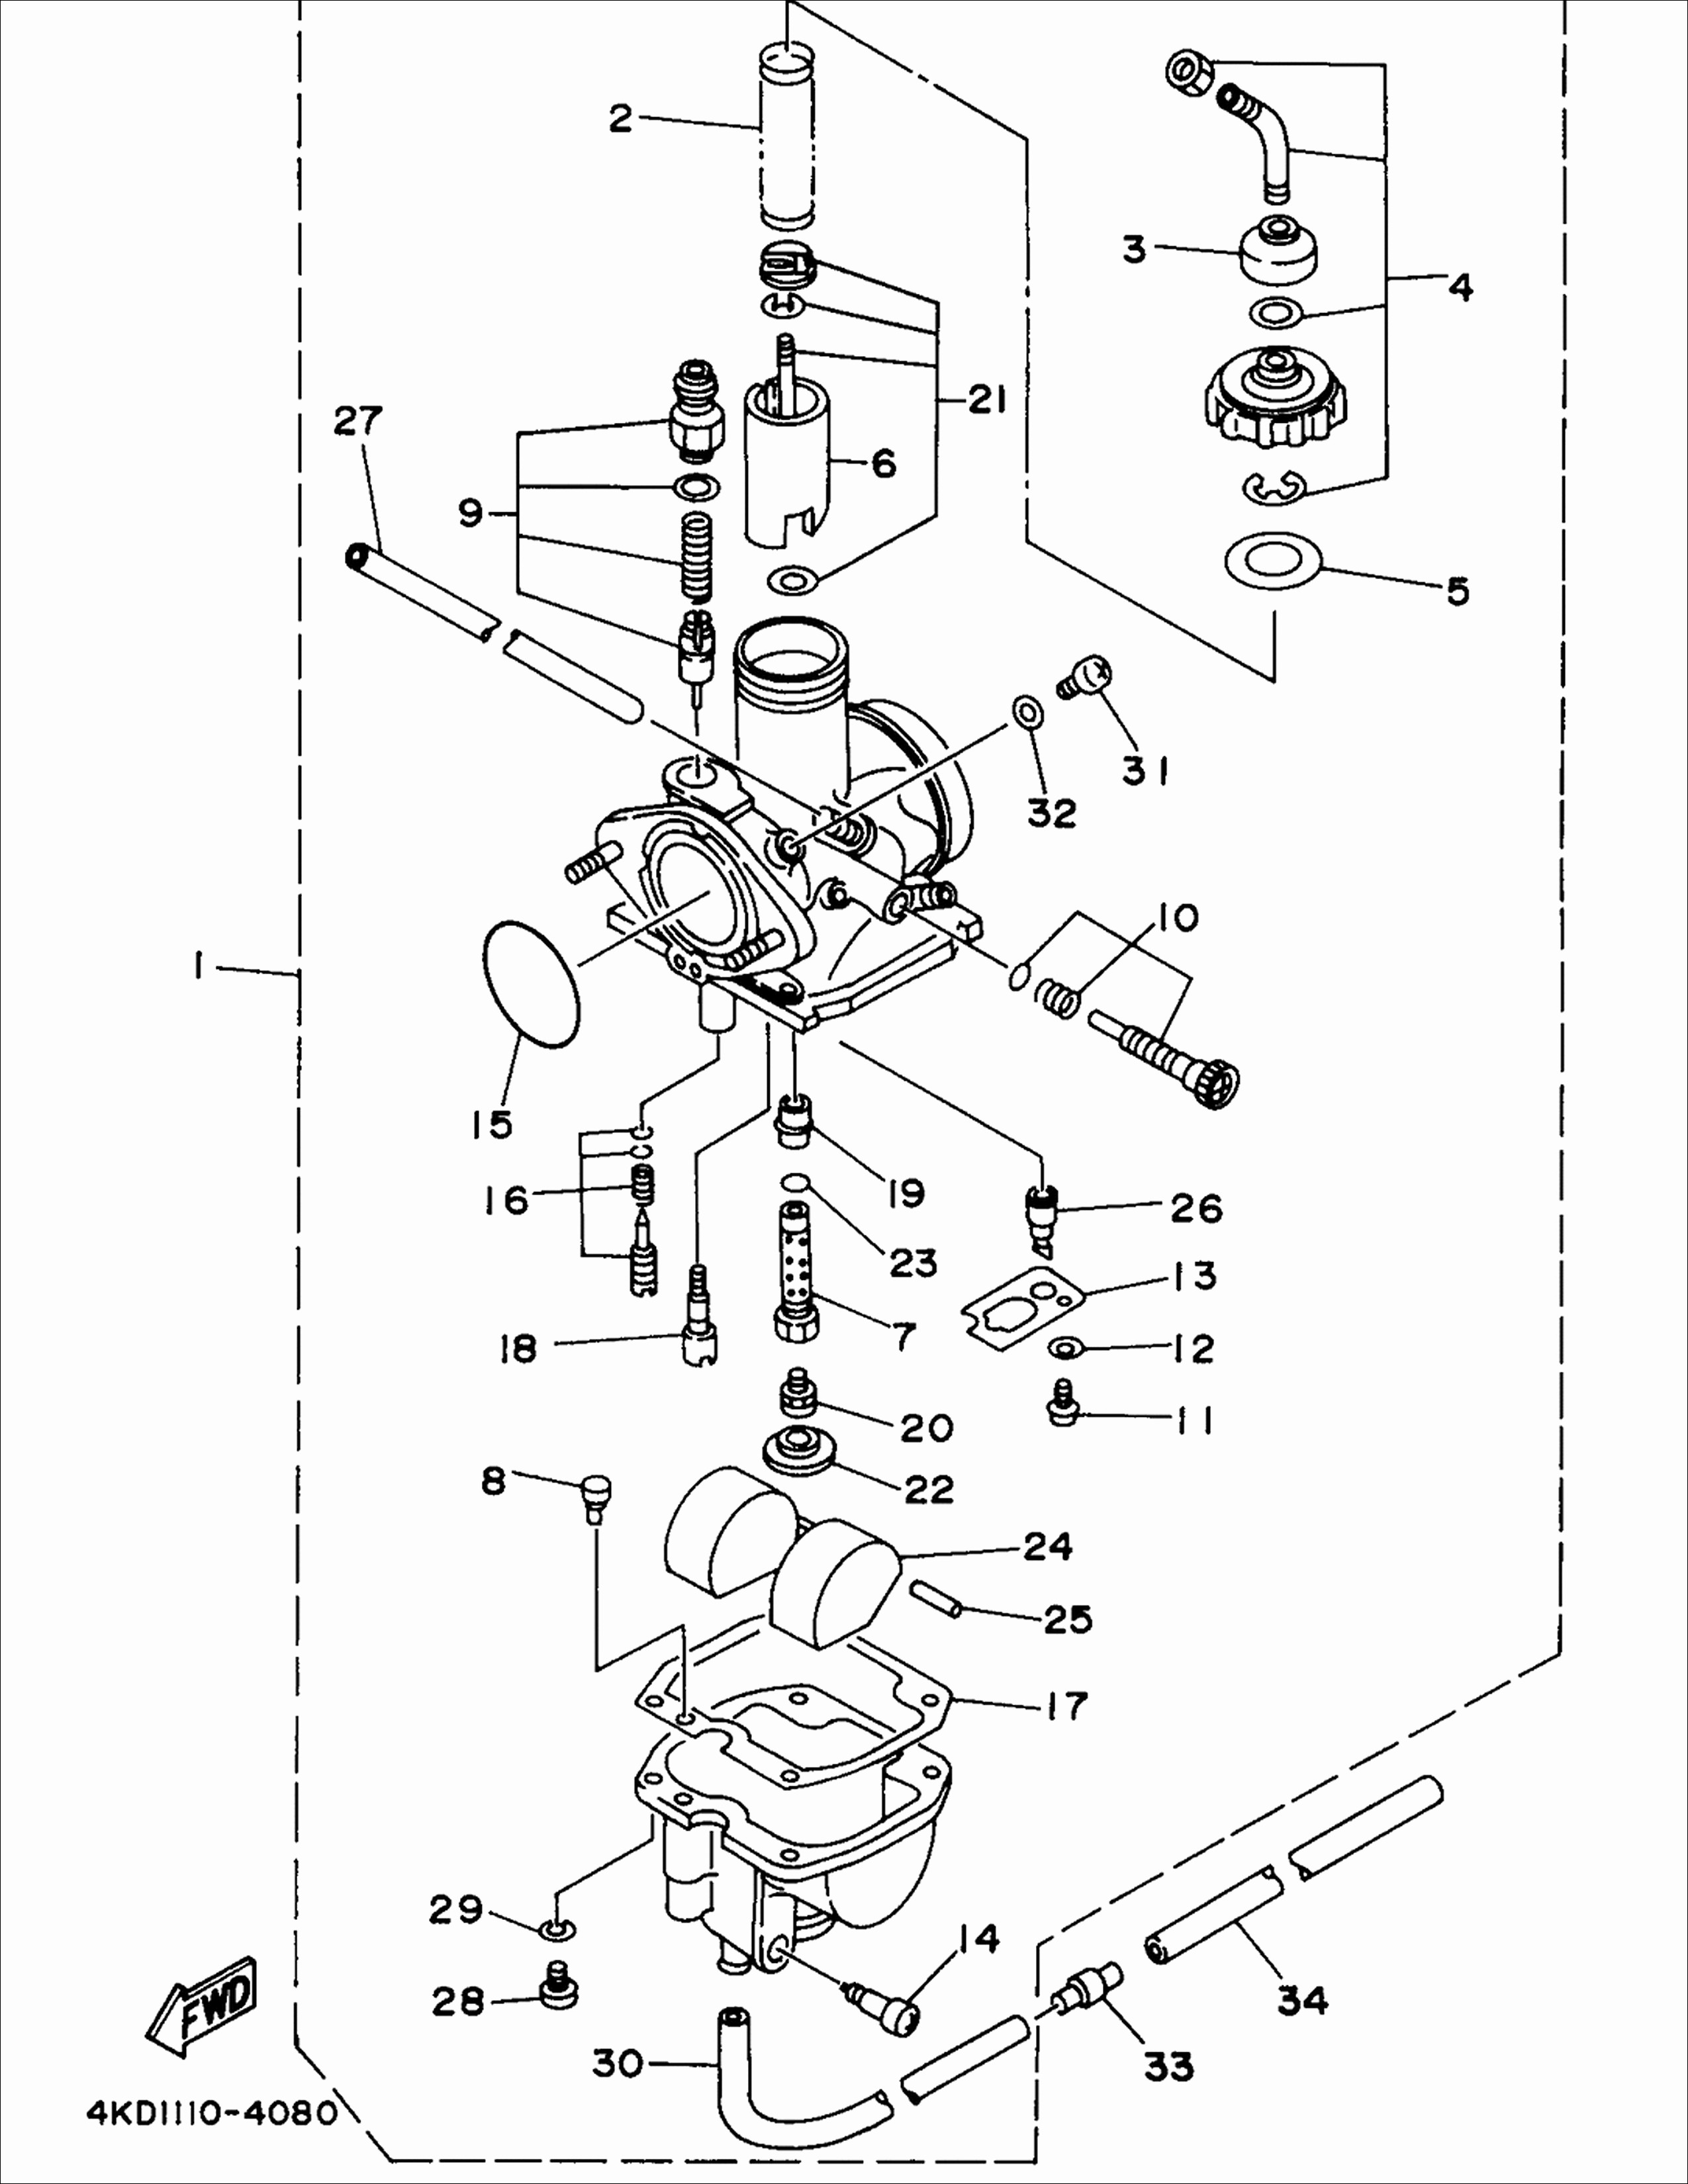 Pontiac Sunfire Manual Transmission Diagram